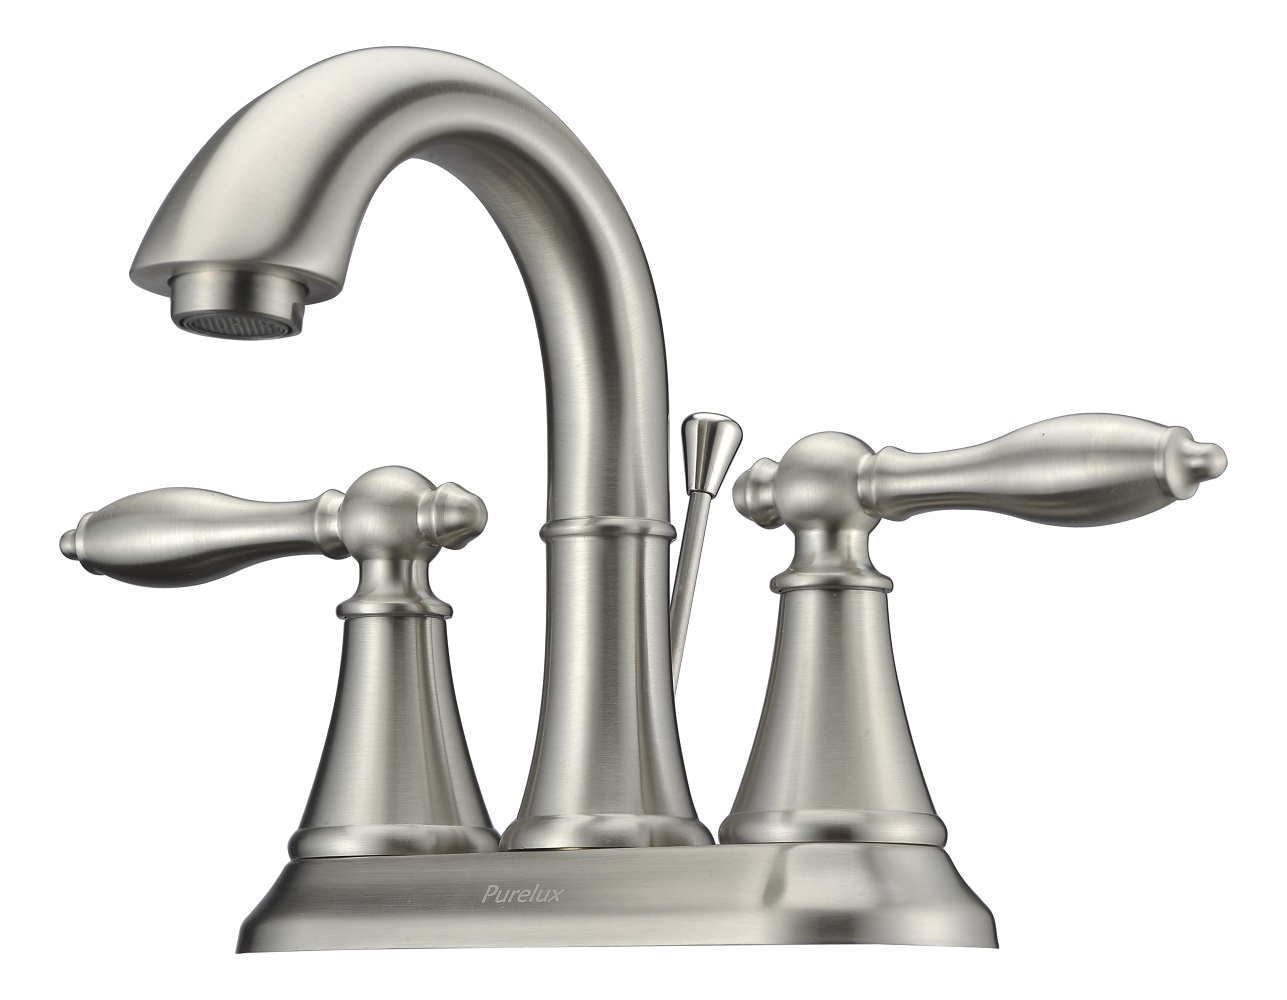 Purelux Bathroom Sink Faucet Two Handle 4